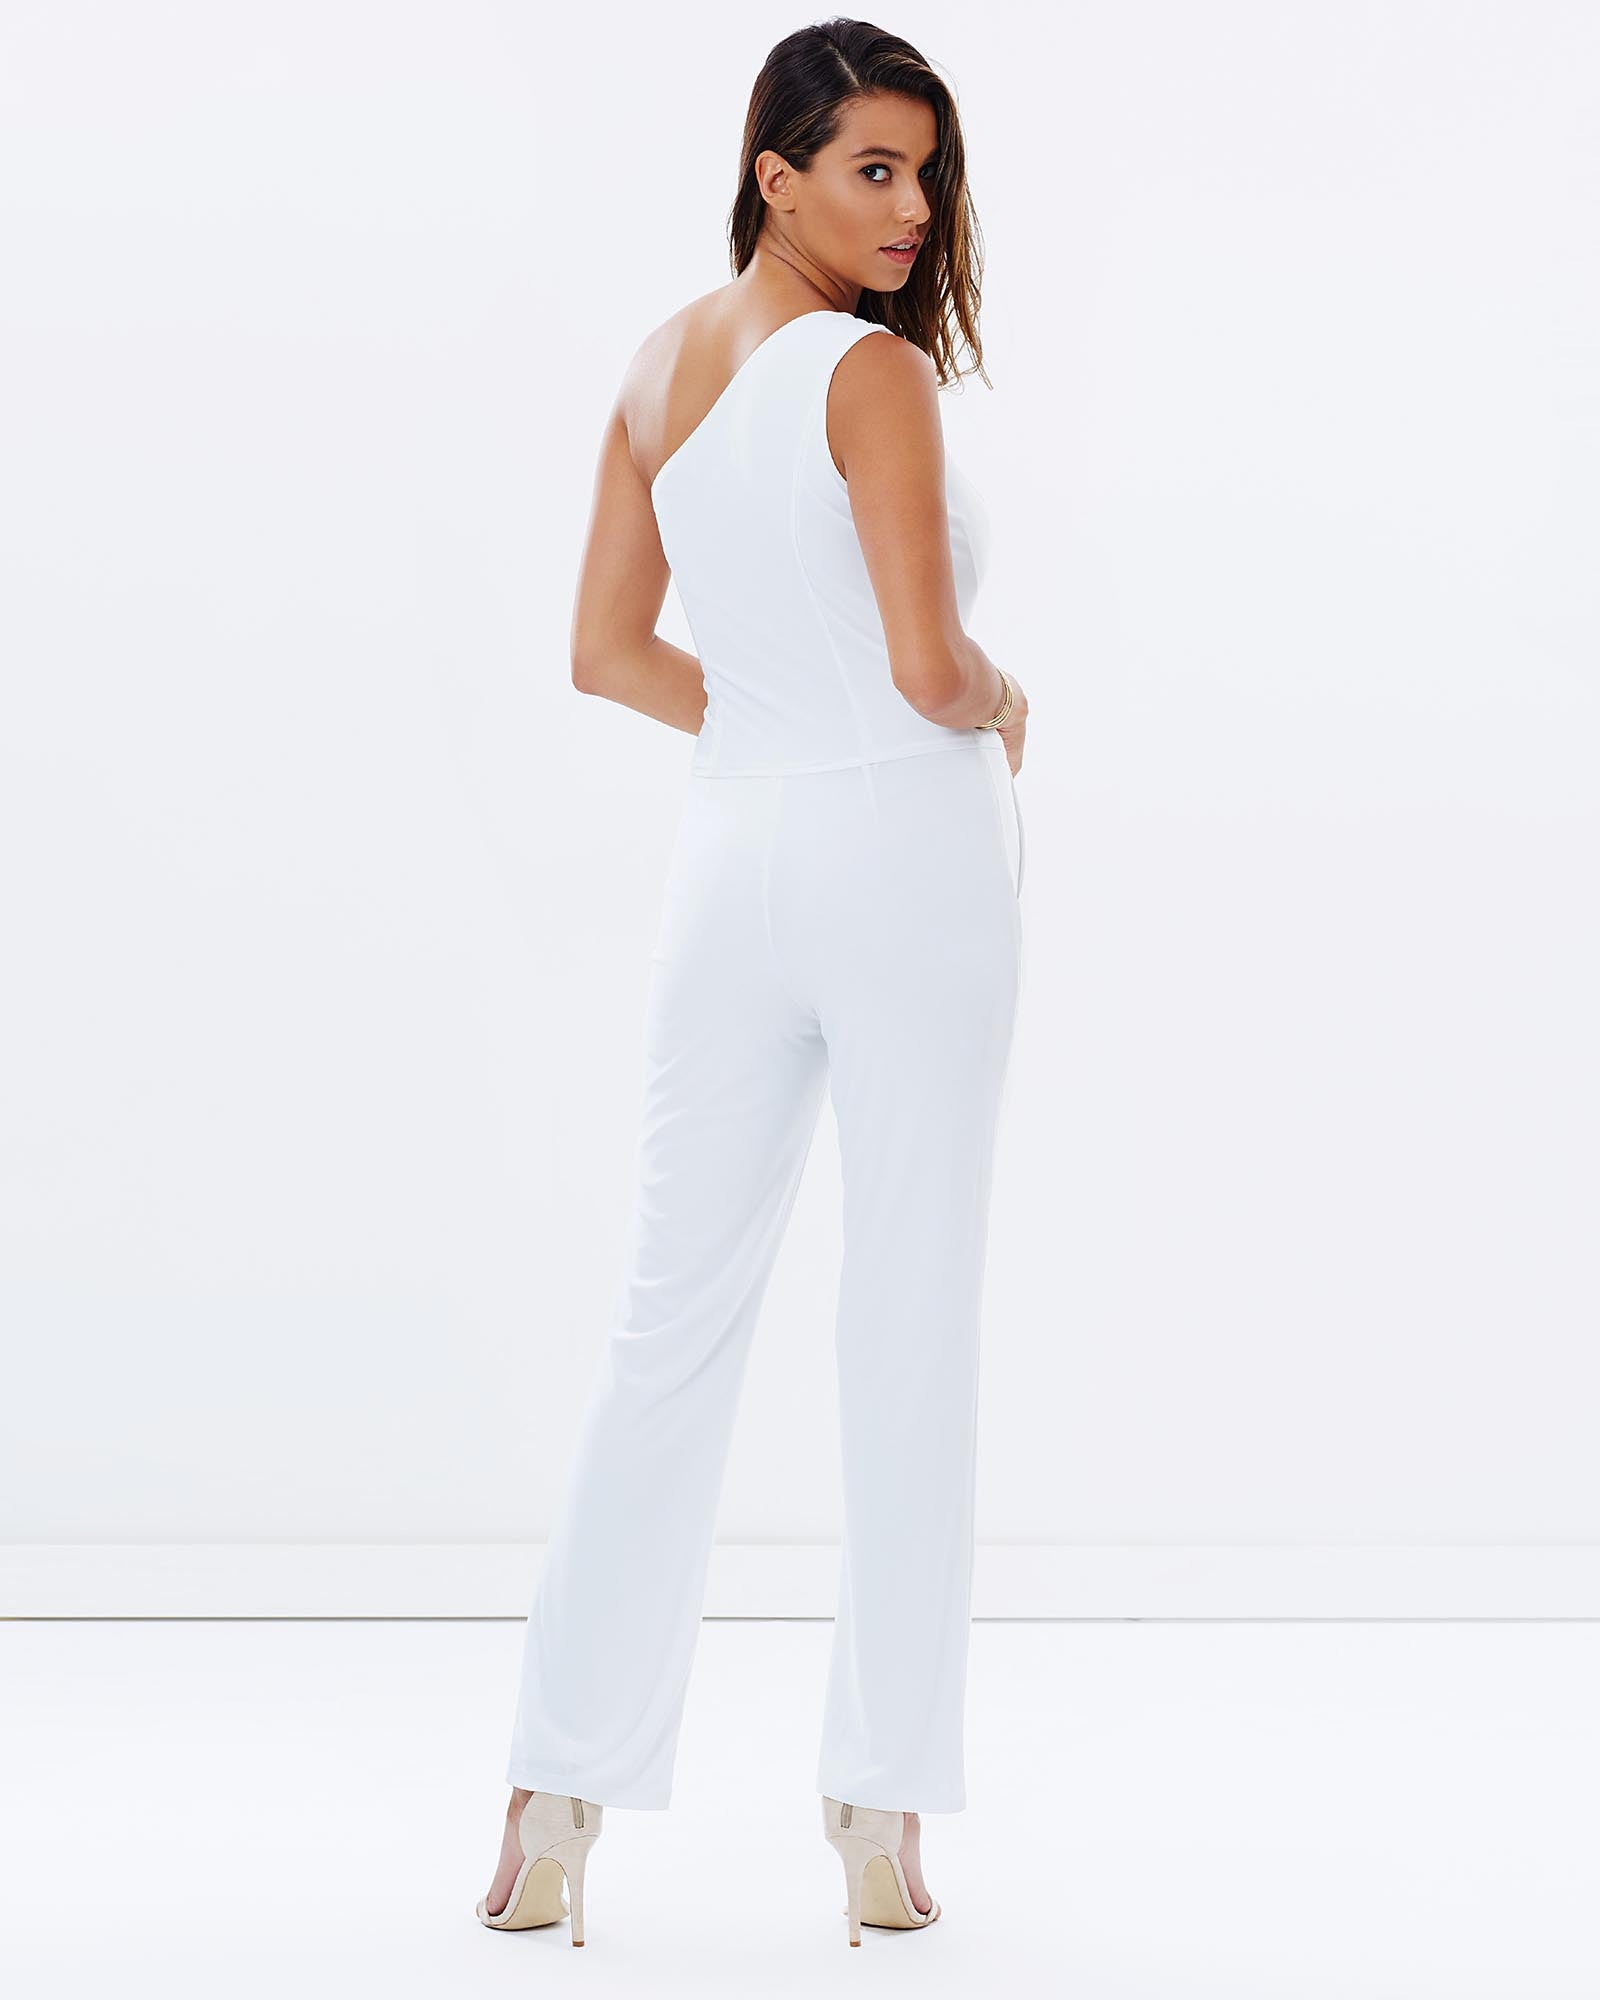 One Shoulder Pantsuit - White